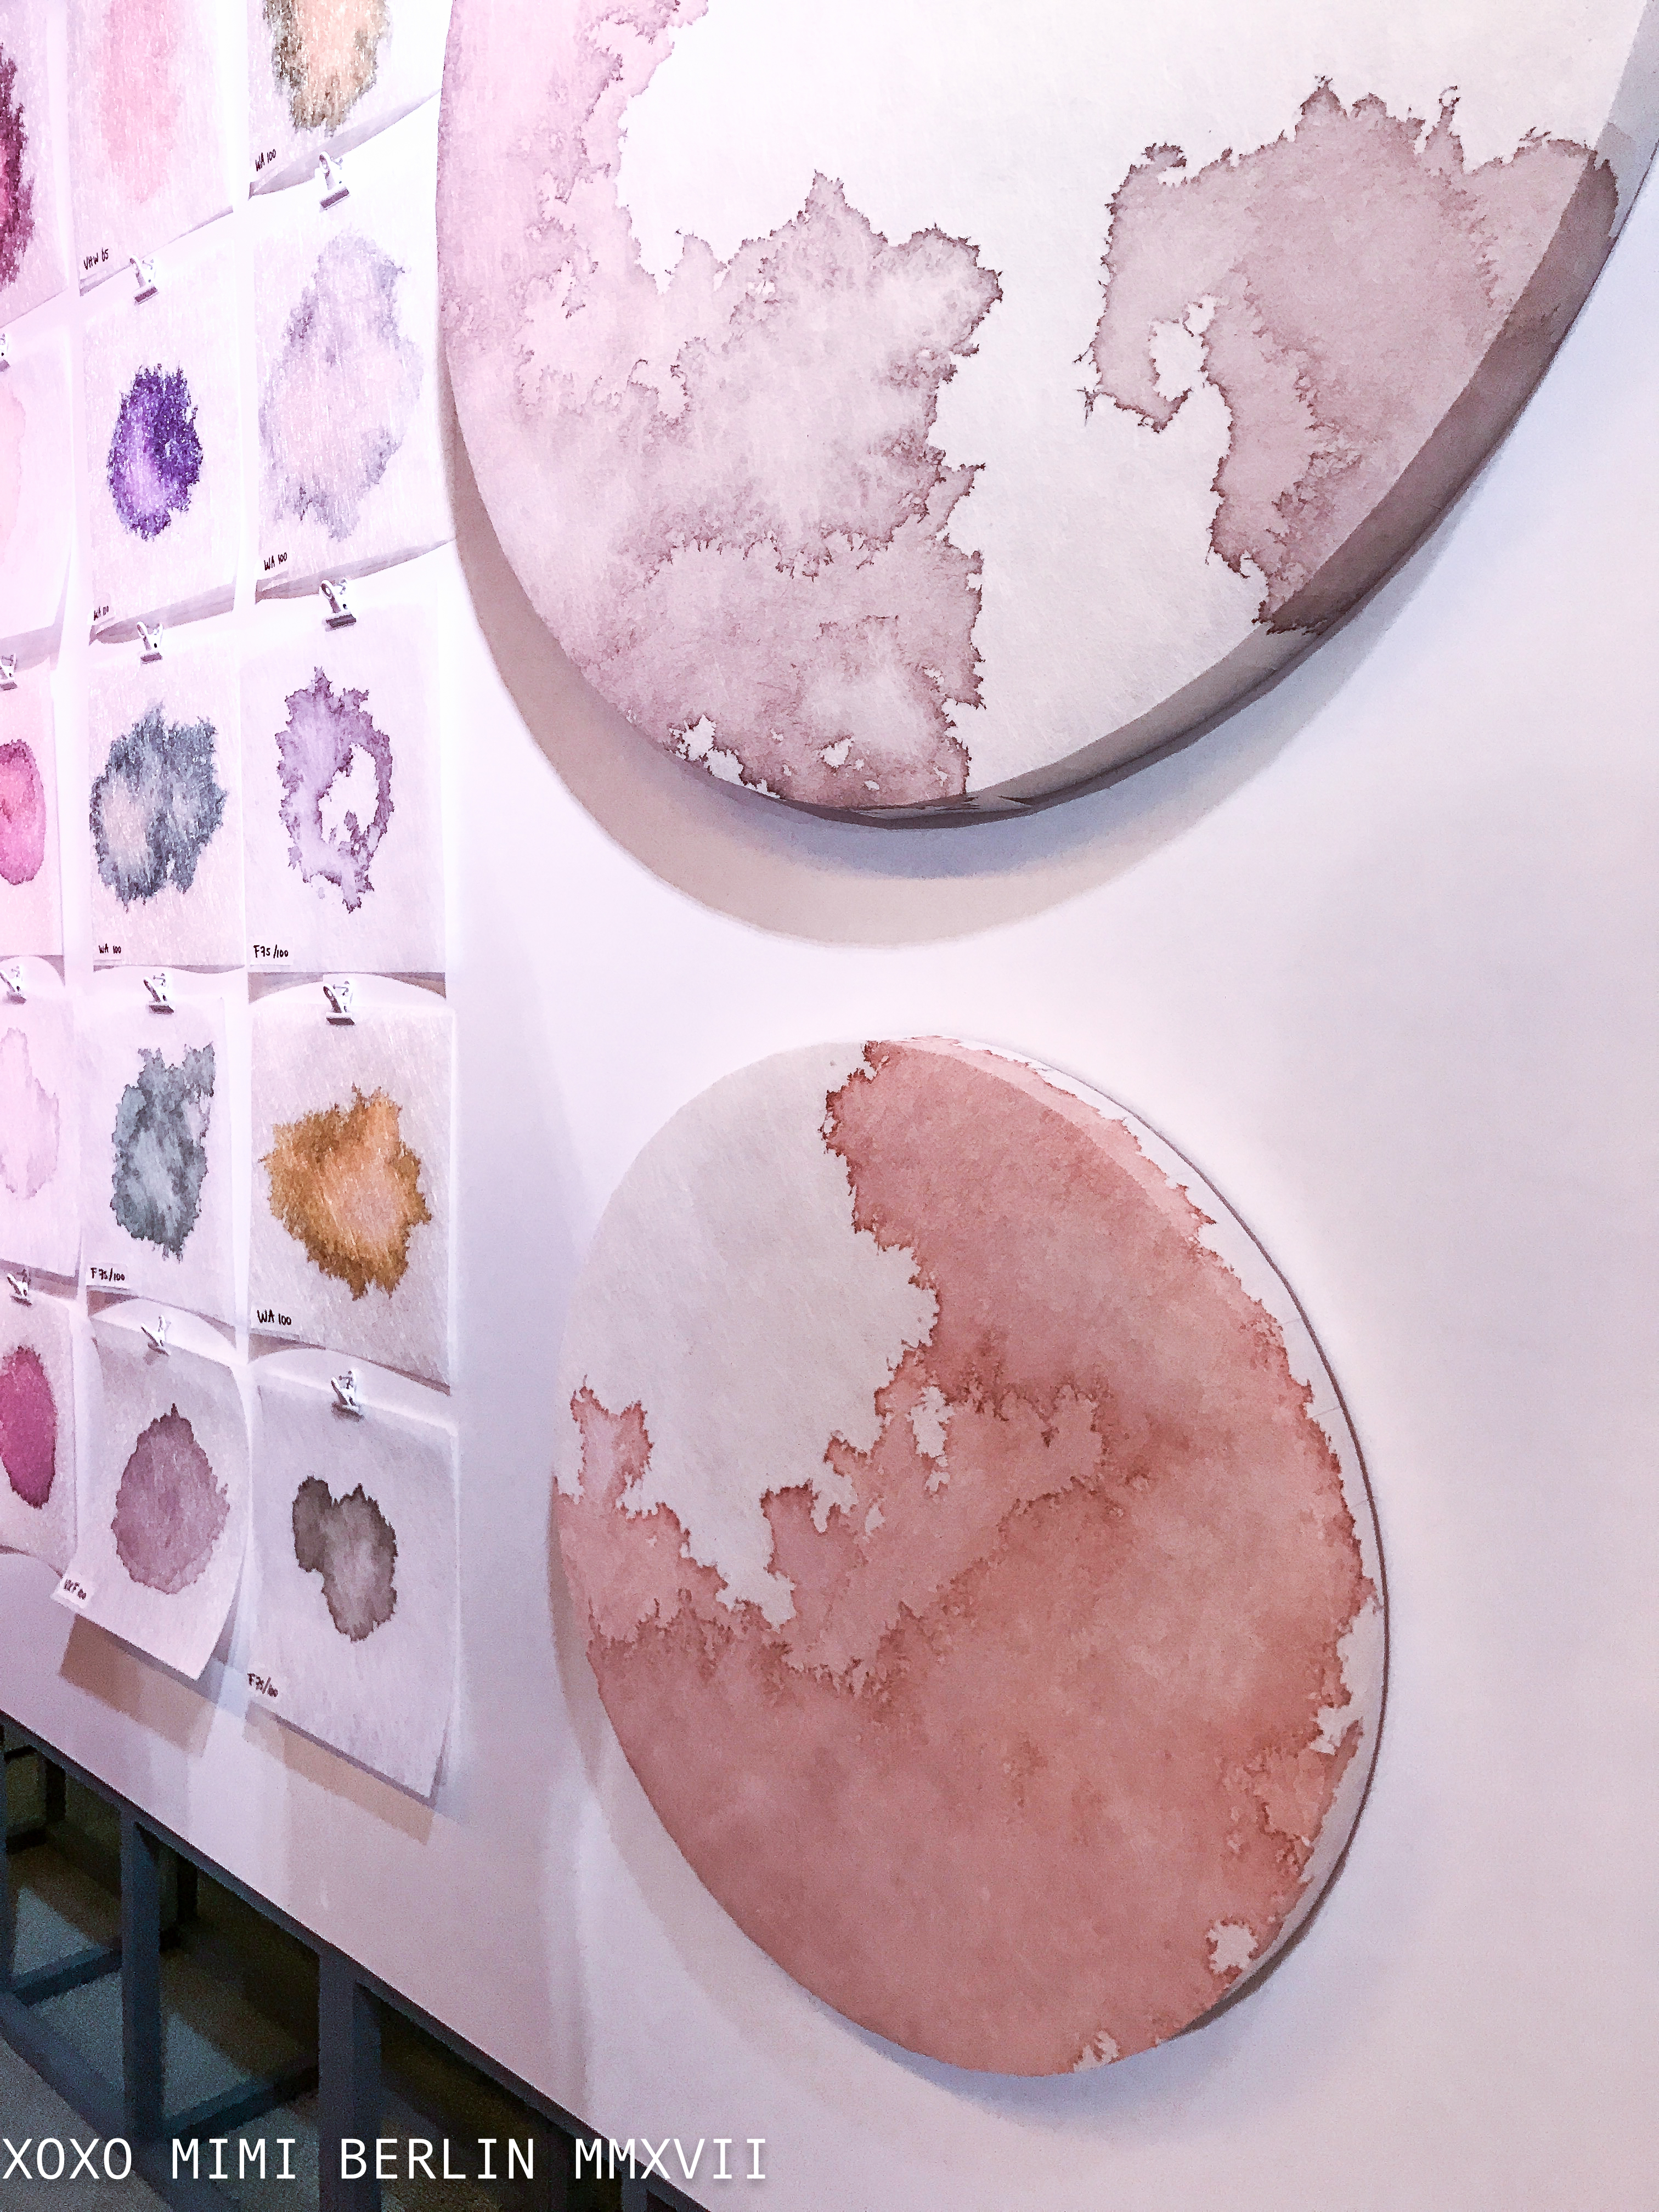 Mieke Lucia created acoustic panels made with Colback®, including the presentation of her 'Color Colback® Research Palette'.